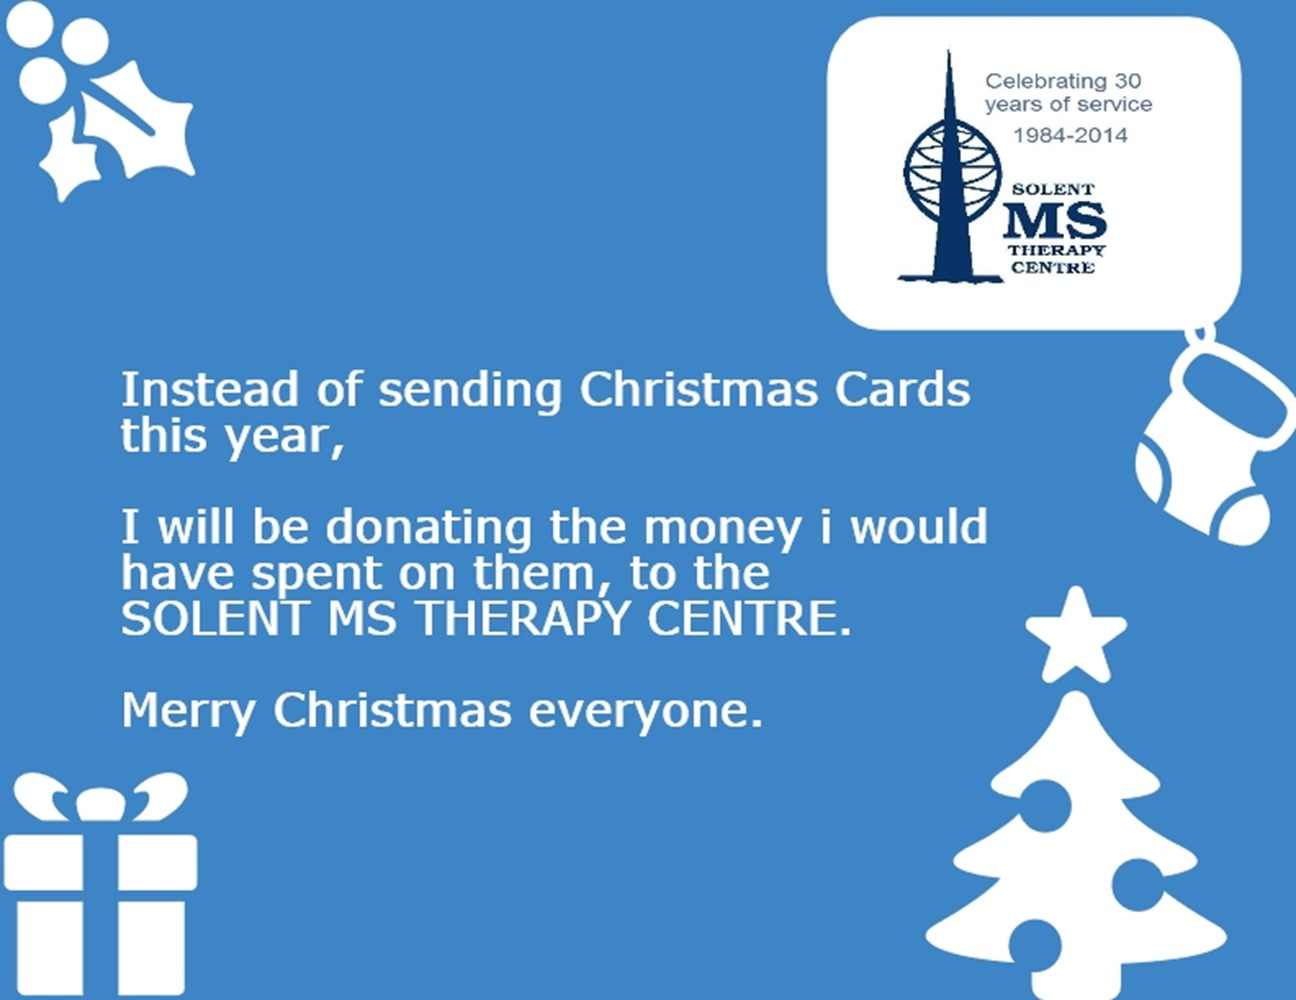 Solent Ms Therapy Centre Christmas Appeal Justgiving